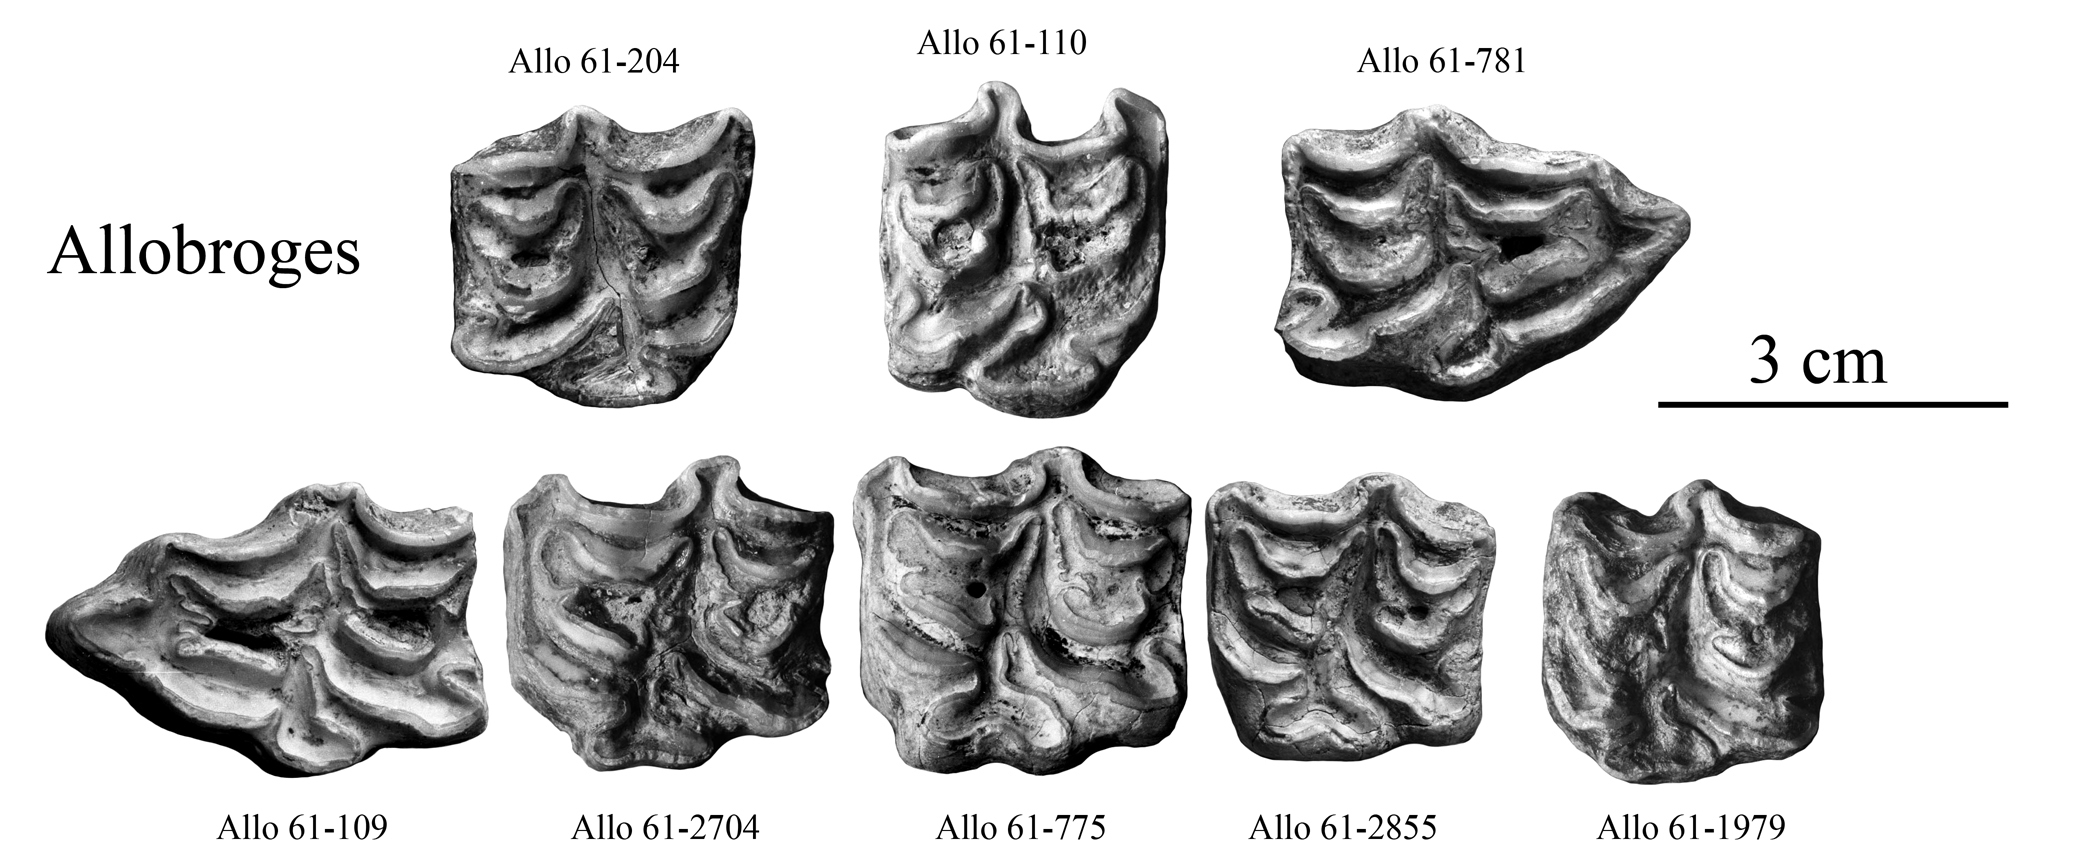 Equus melkiensis and E. aff. melkiensis, Upper cheek teeth